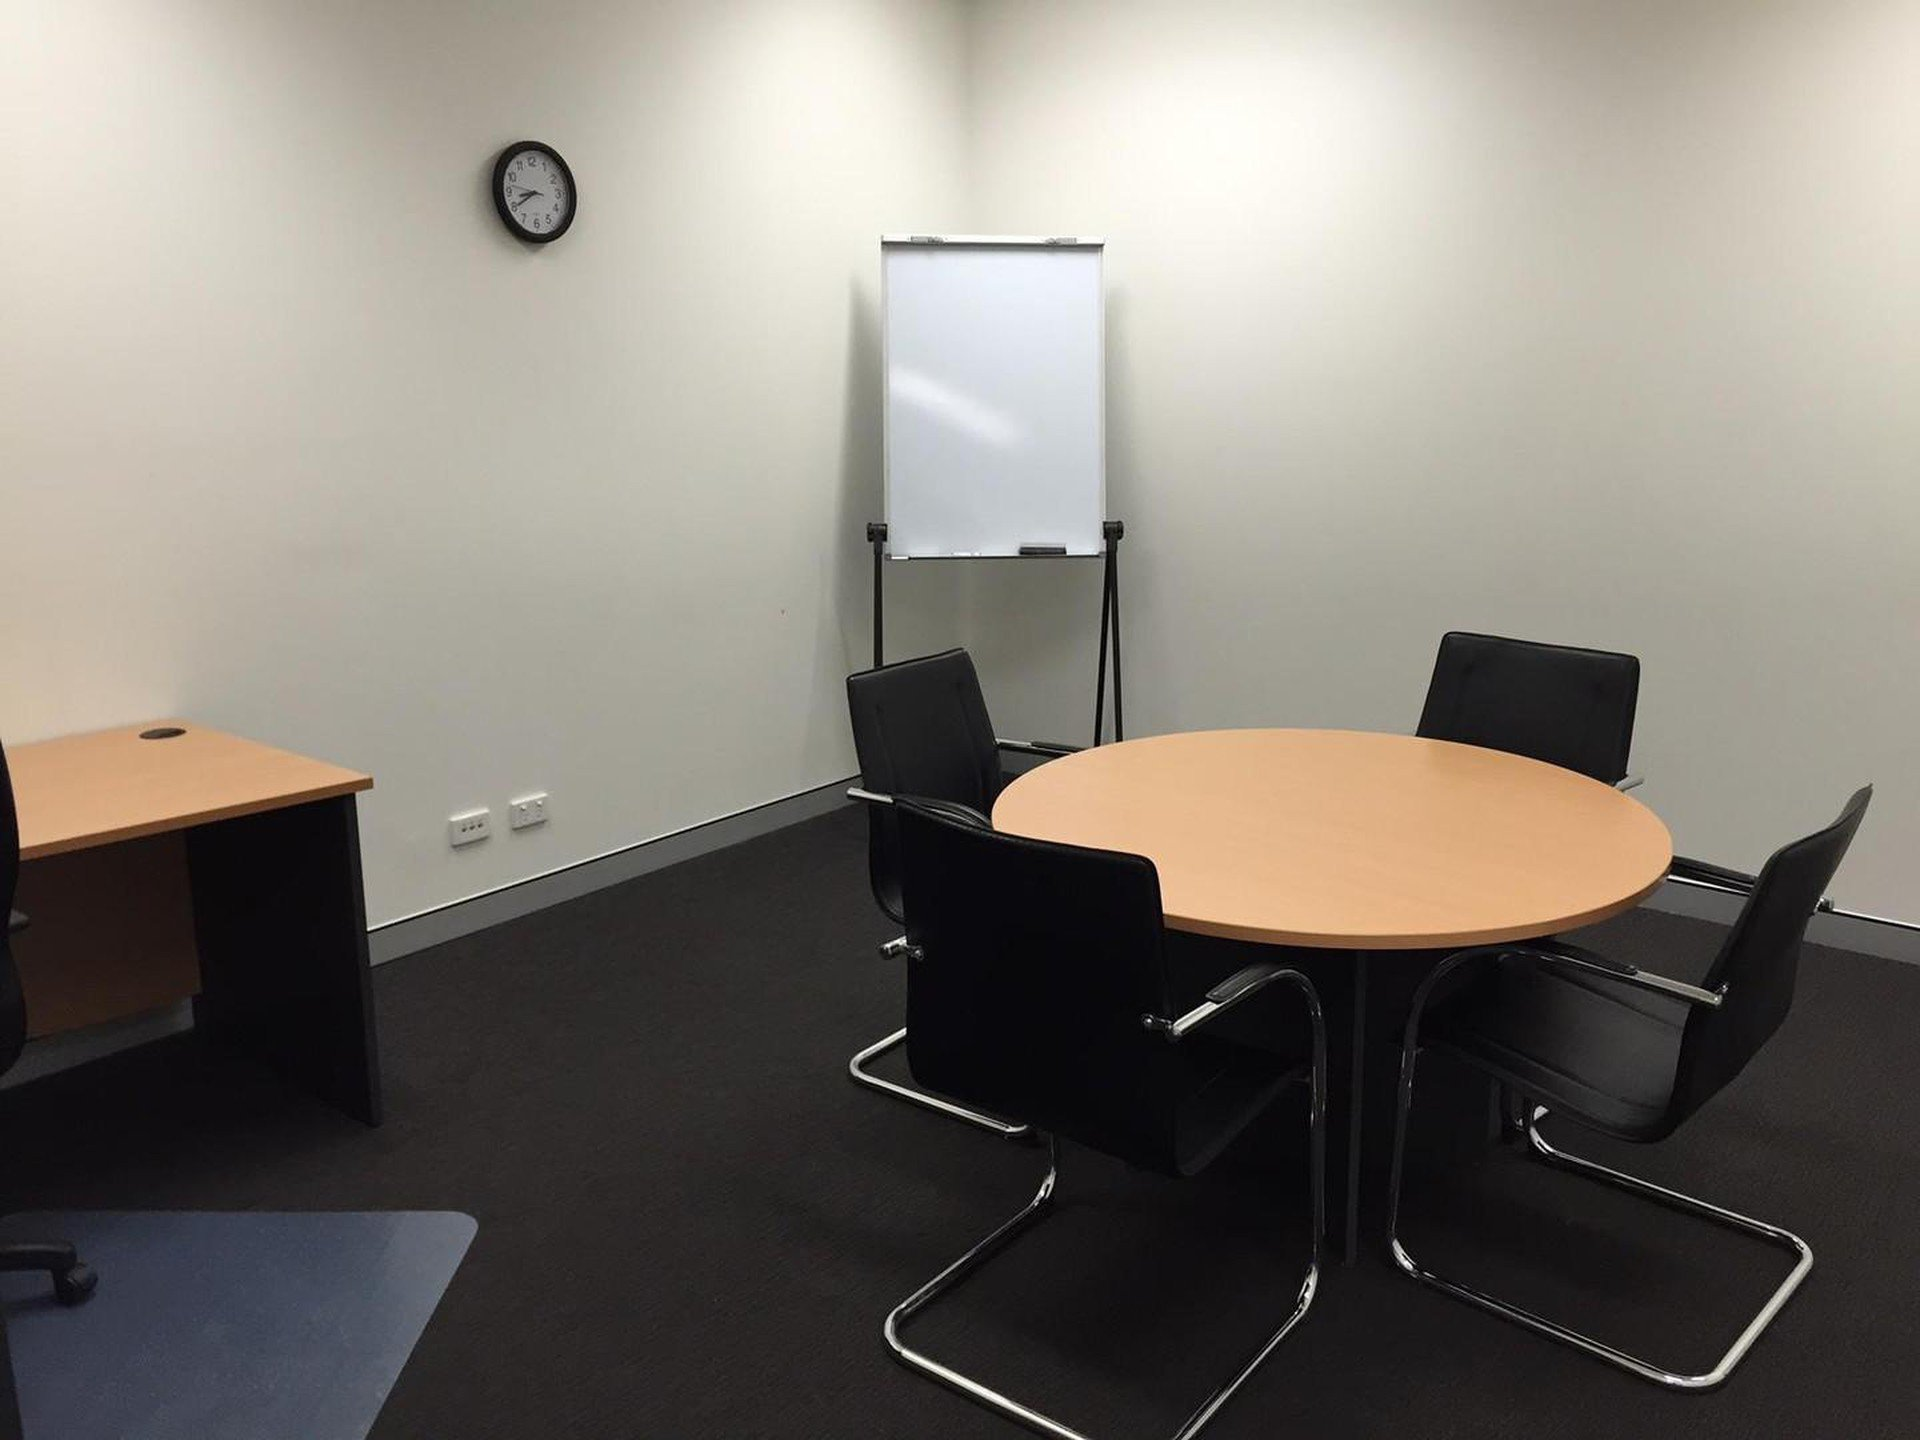 Brisbane conference rooms Salle de réunion Ashgrove Serviced Offices - Larger Meeting Room image 0